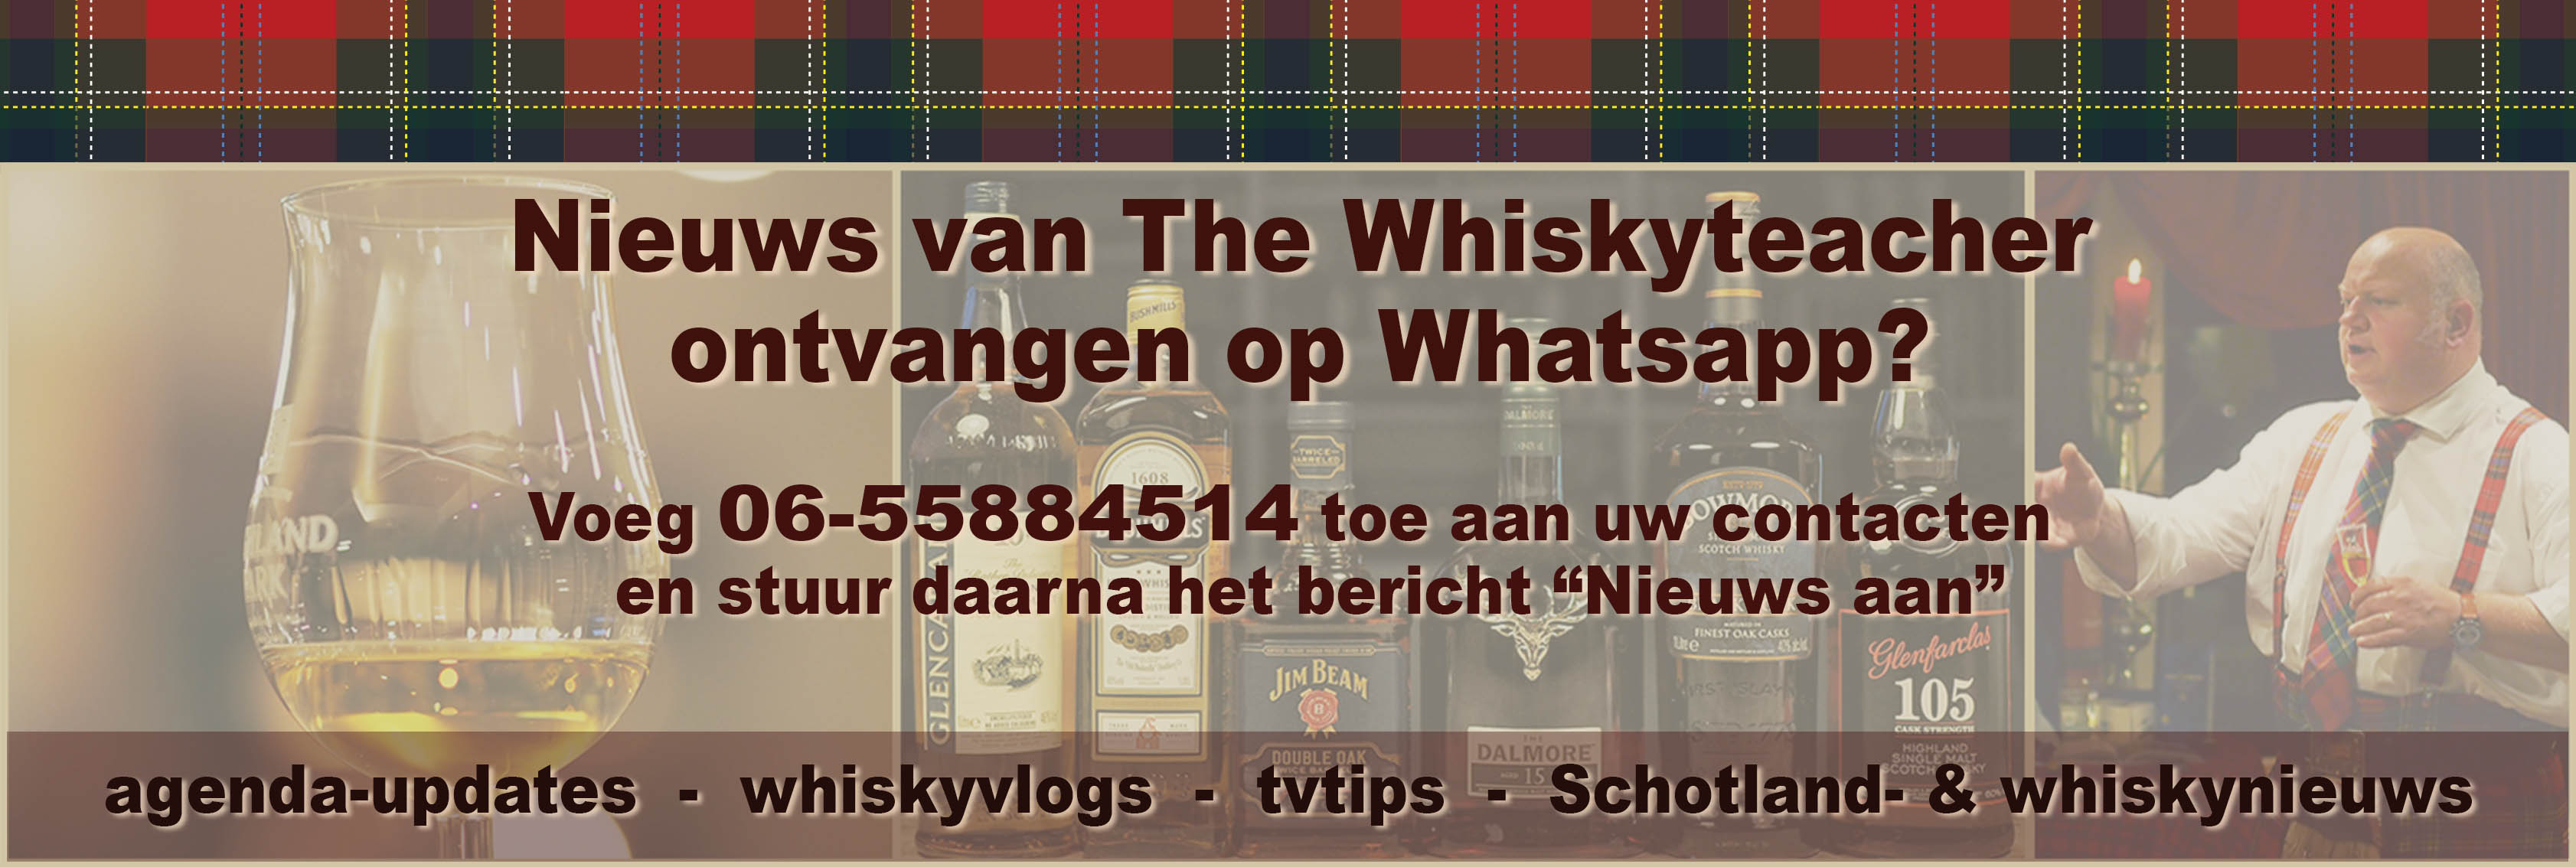 whiskynieuws - whiskyvlog - tvtips - Schotland - The Whiskyteacher - whiskyproeverij